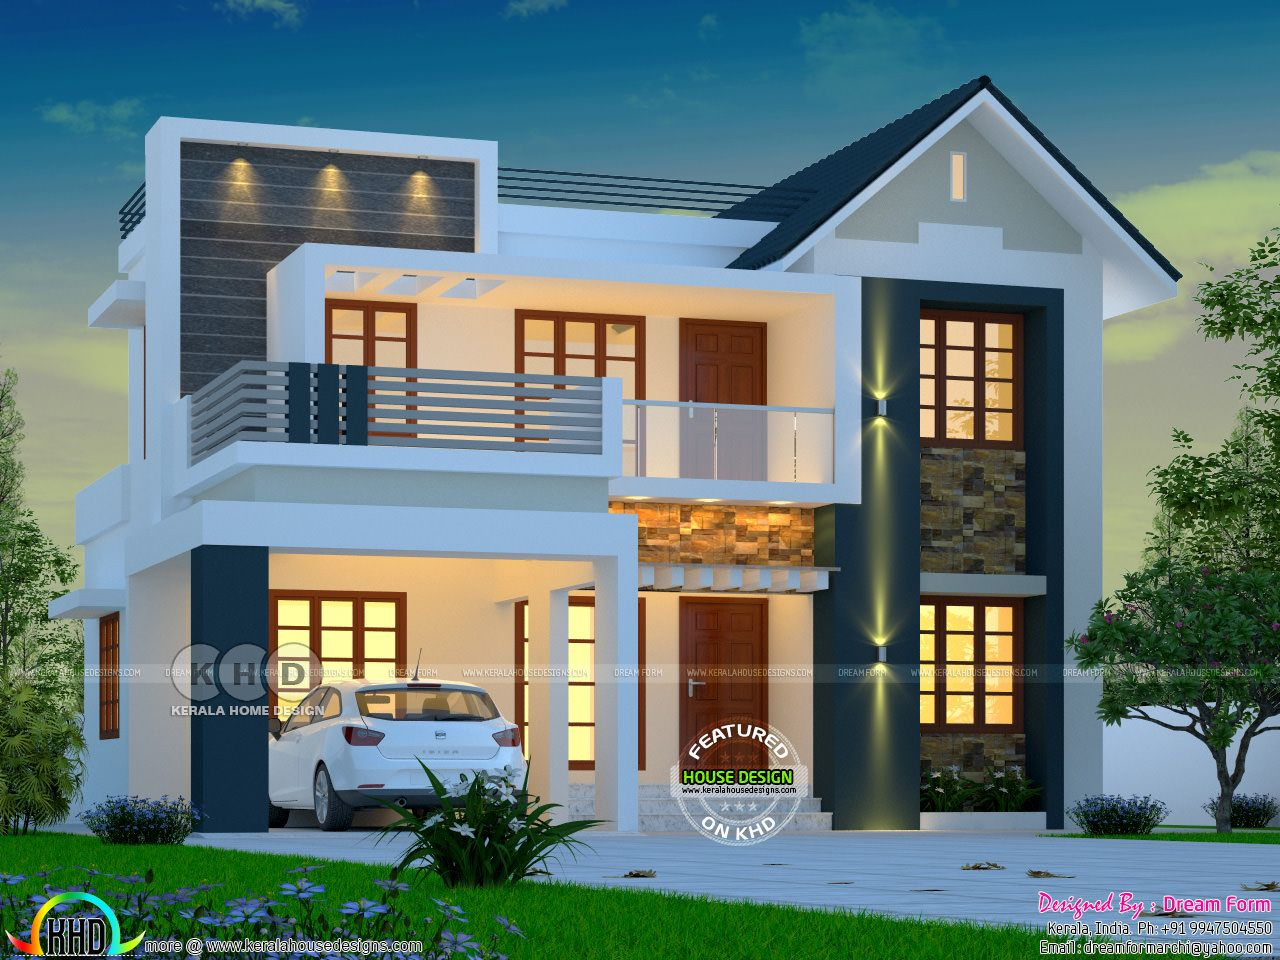 4aab1cc68257ee79f3f6308921d4b1c5 - 43+ Low Budget Small House Design With Rooftop Philippines Pictures